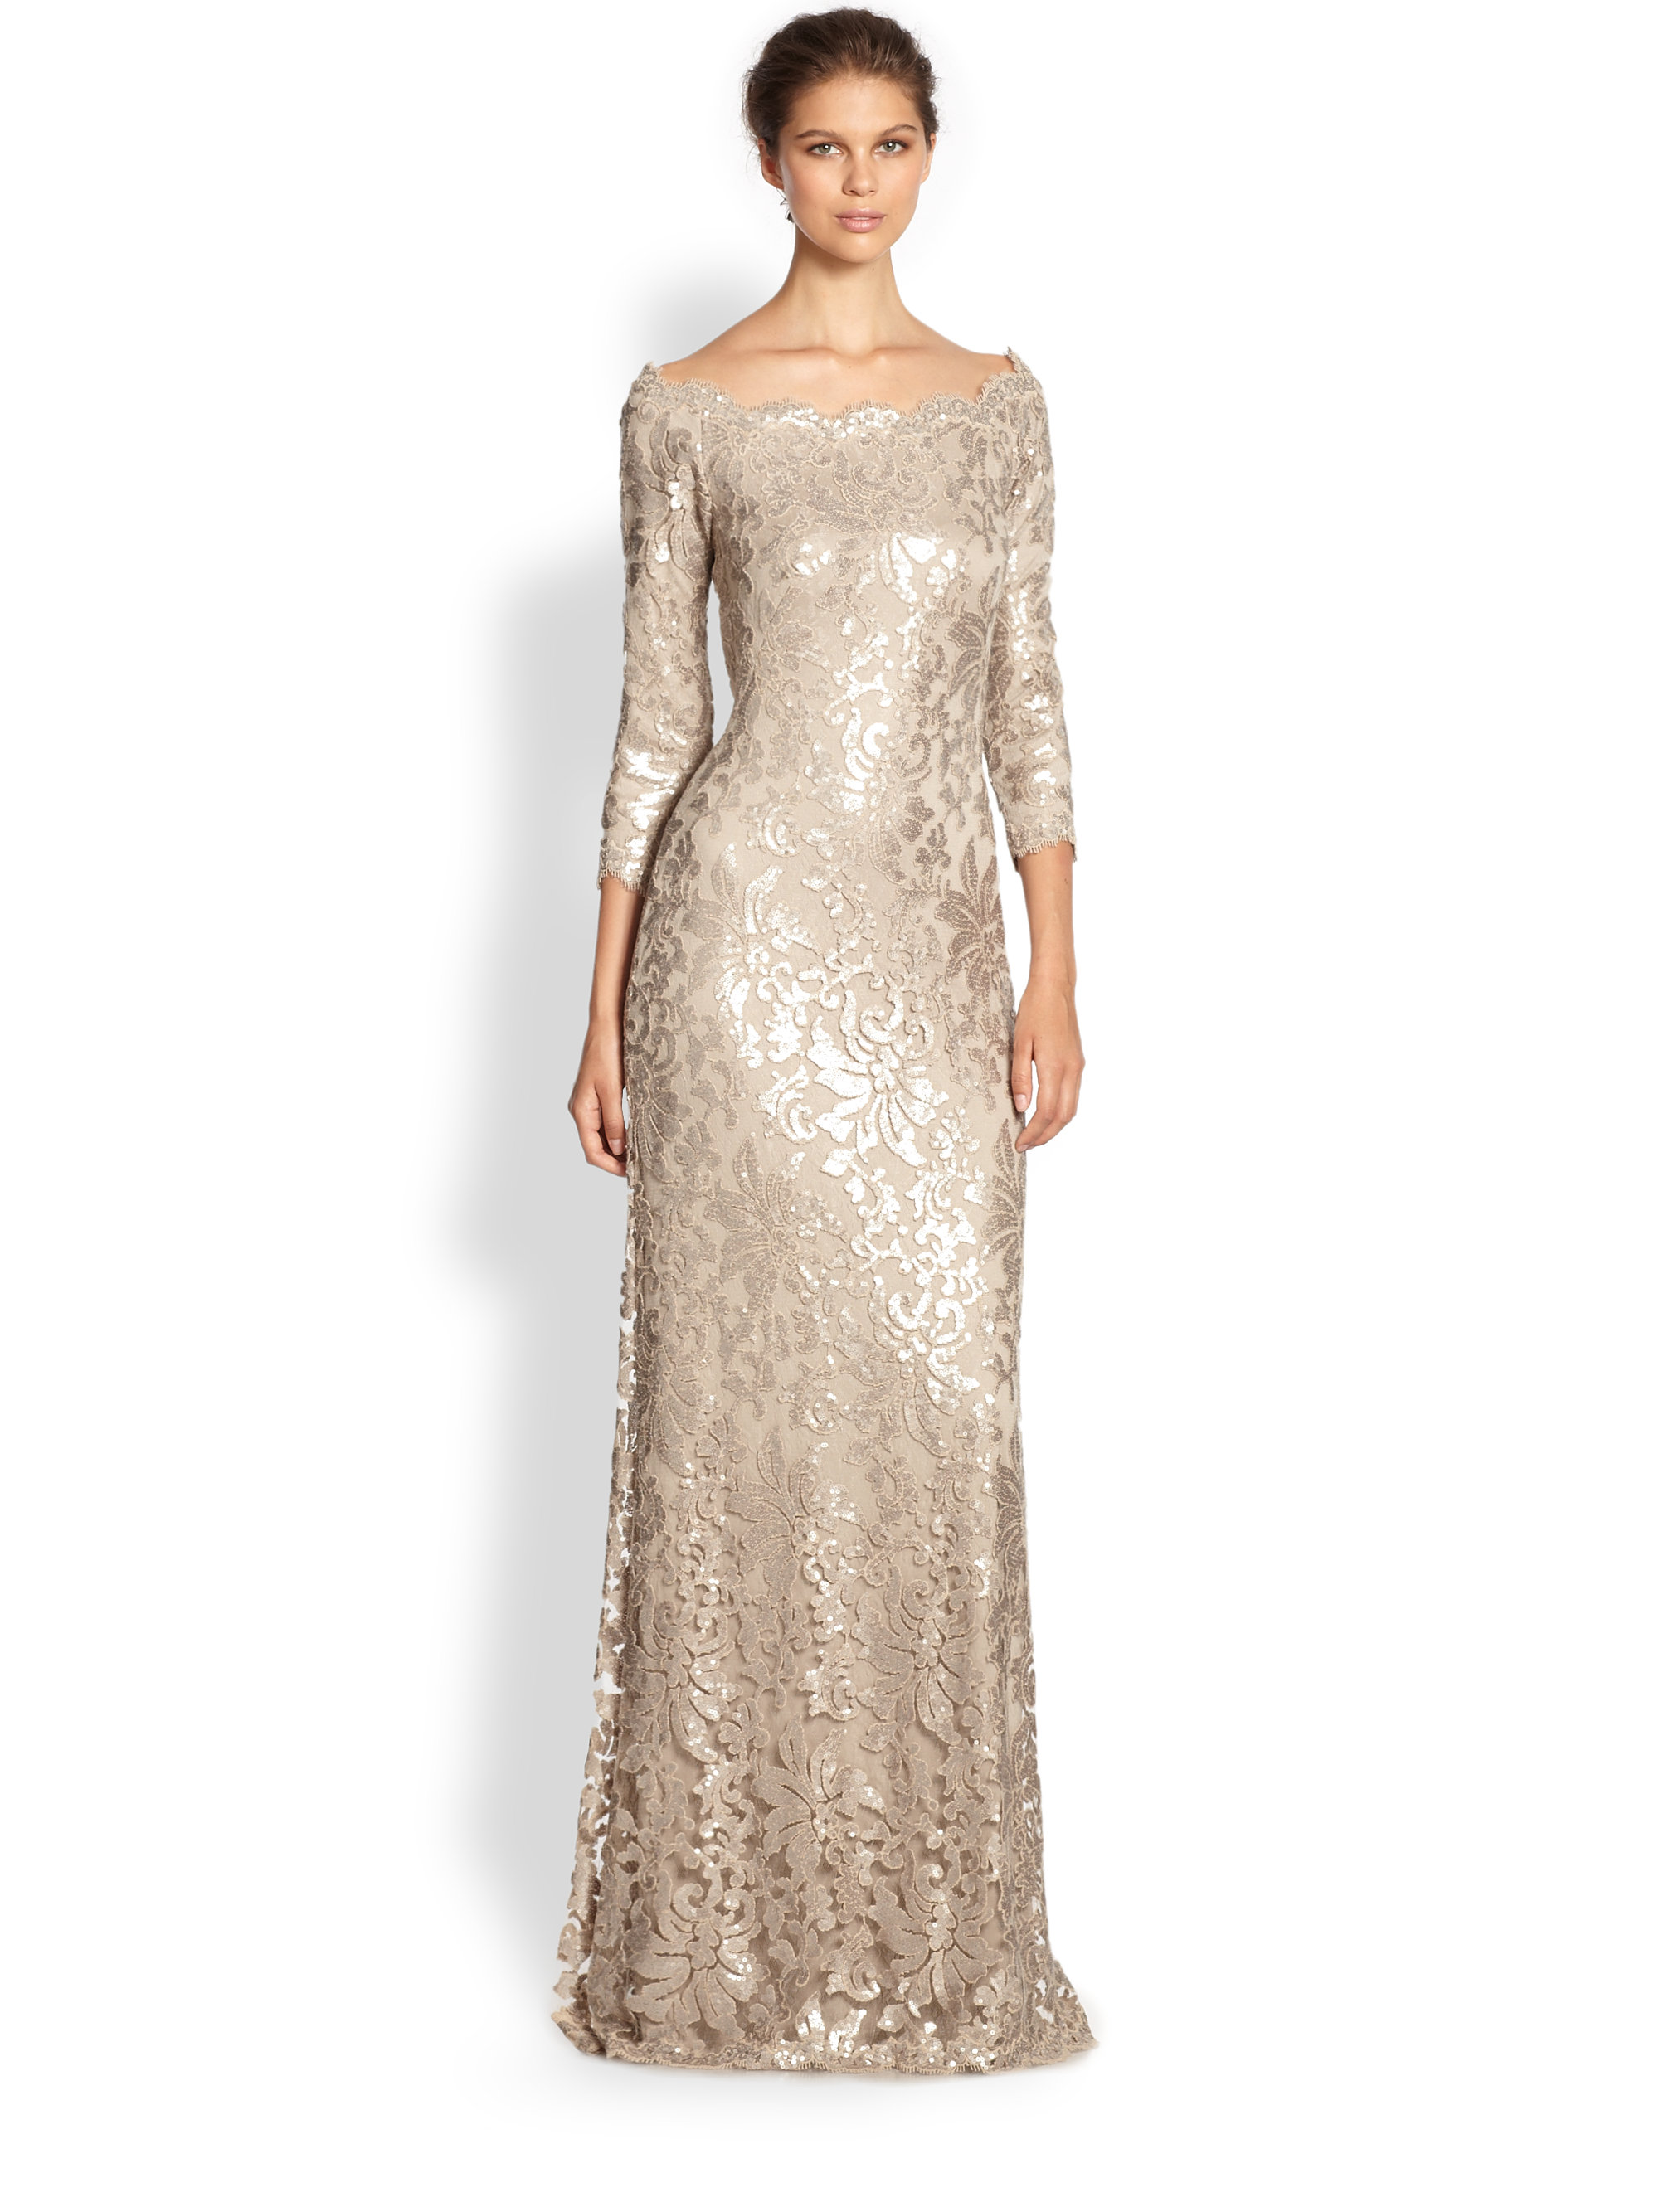 Lyst - Tadashi Shoji Sequined Lace Boatneck Gown in Metallic